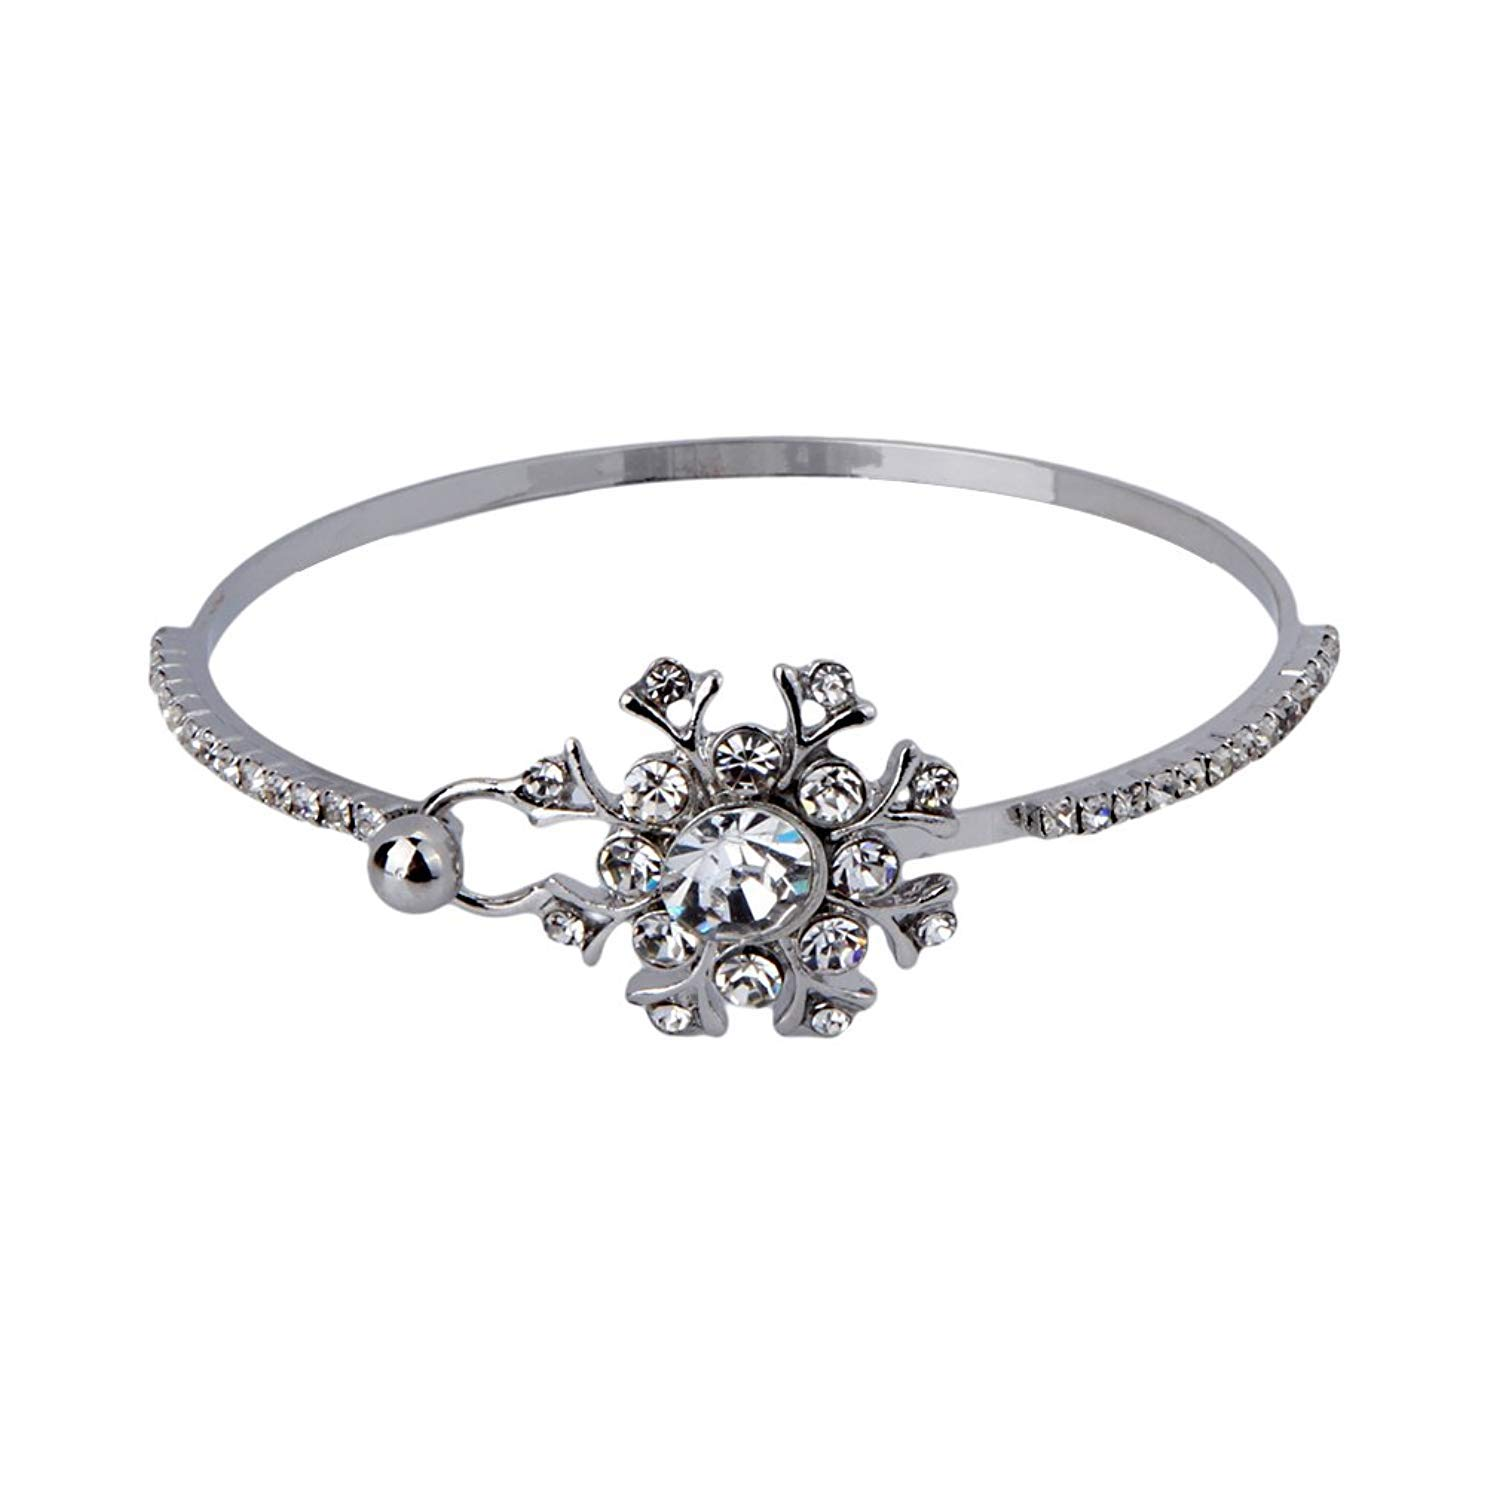 DVANIS Women's Jewelry Silver Plated Snowflake Crystal Bangle Bracelet Inside Diameter 6.1cm